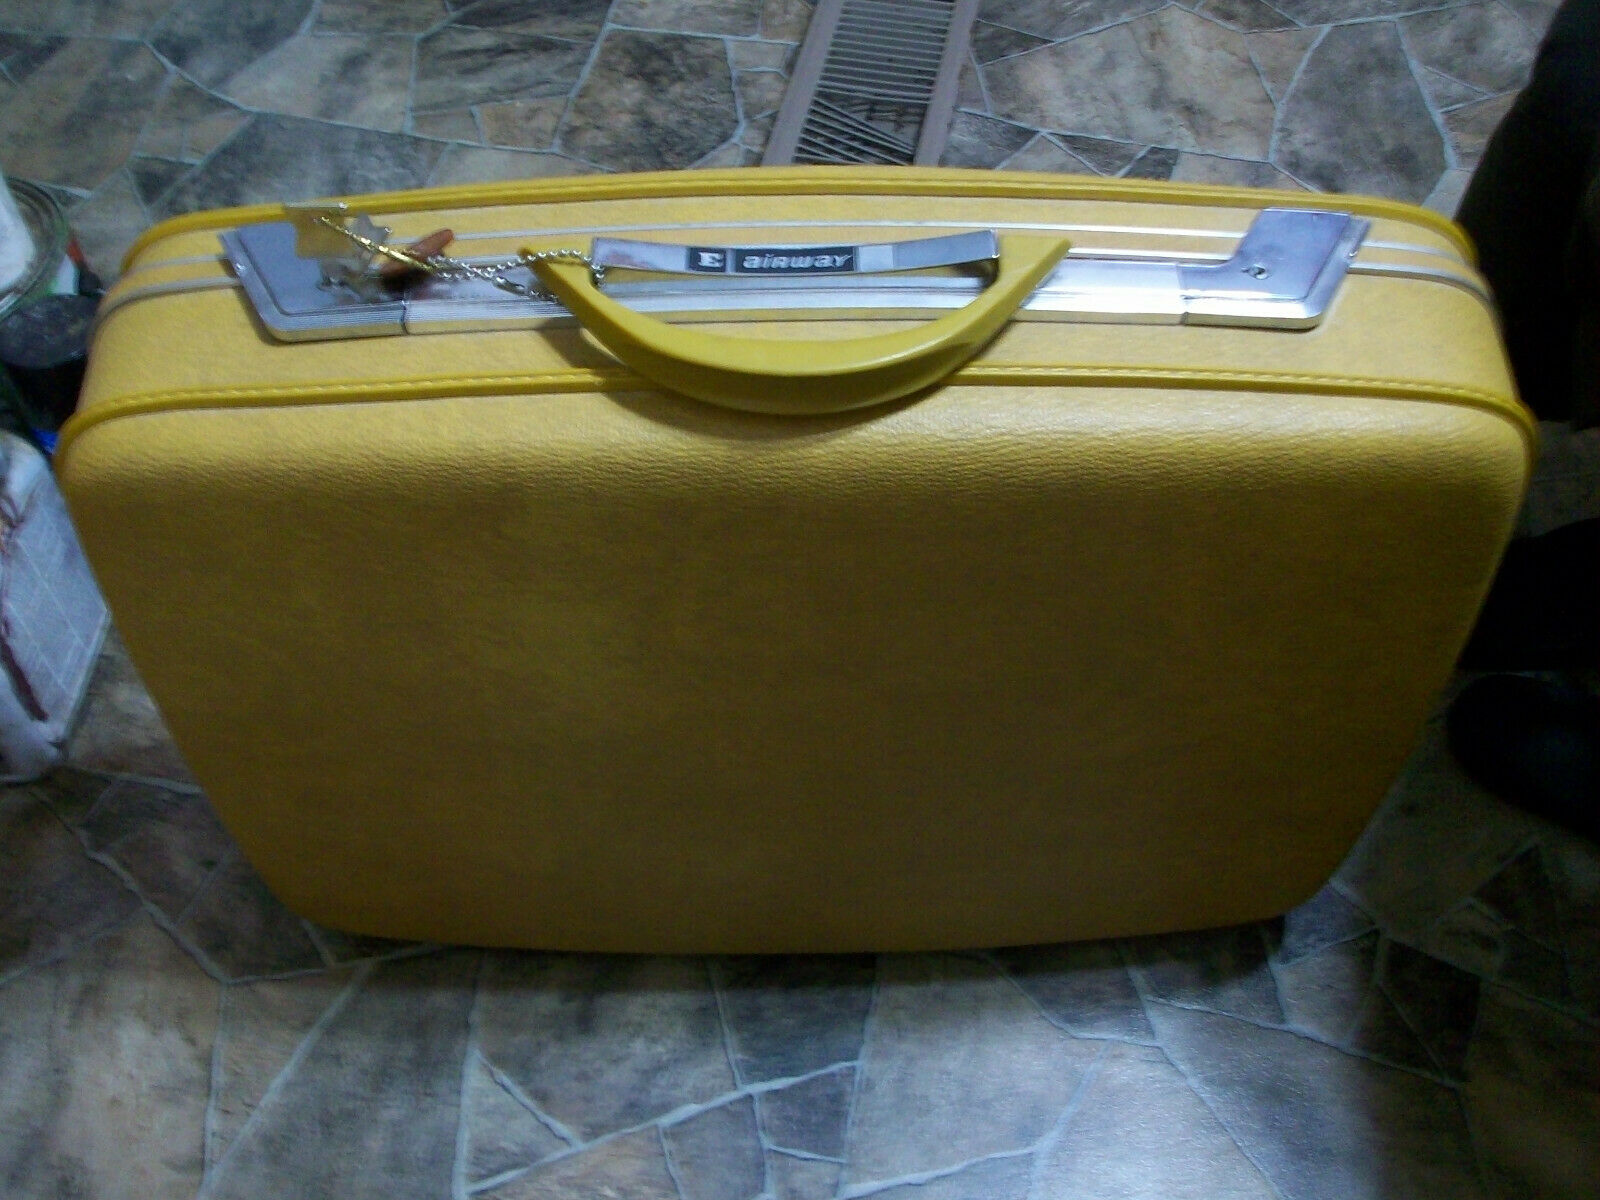 Vintage Airway Suitcase Yellow - $9.99